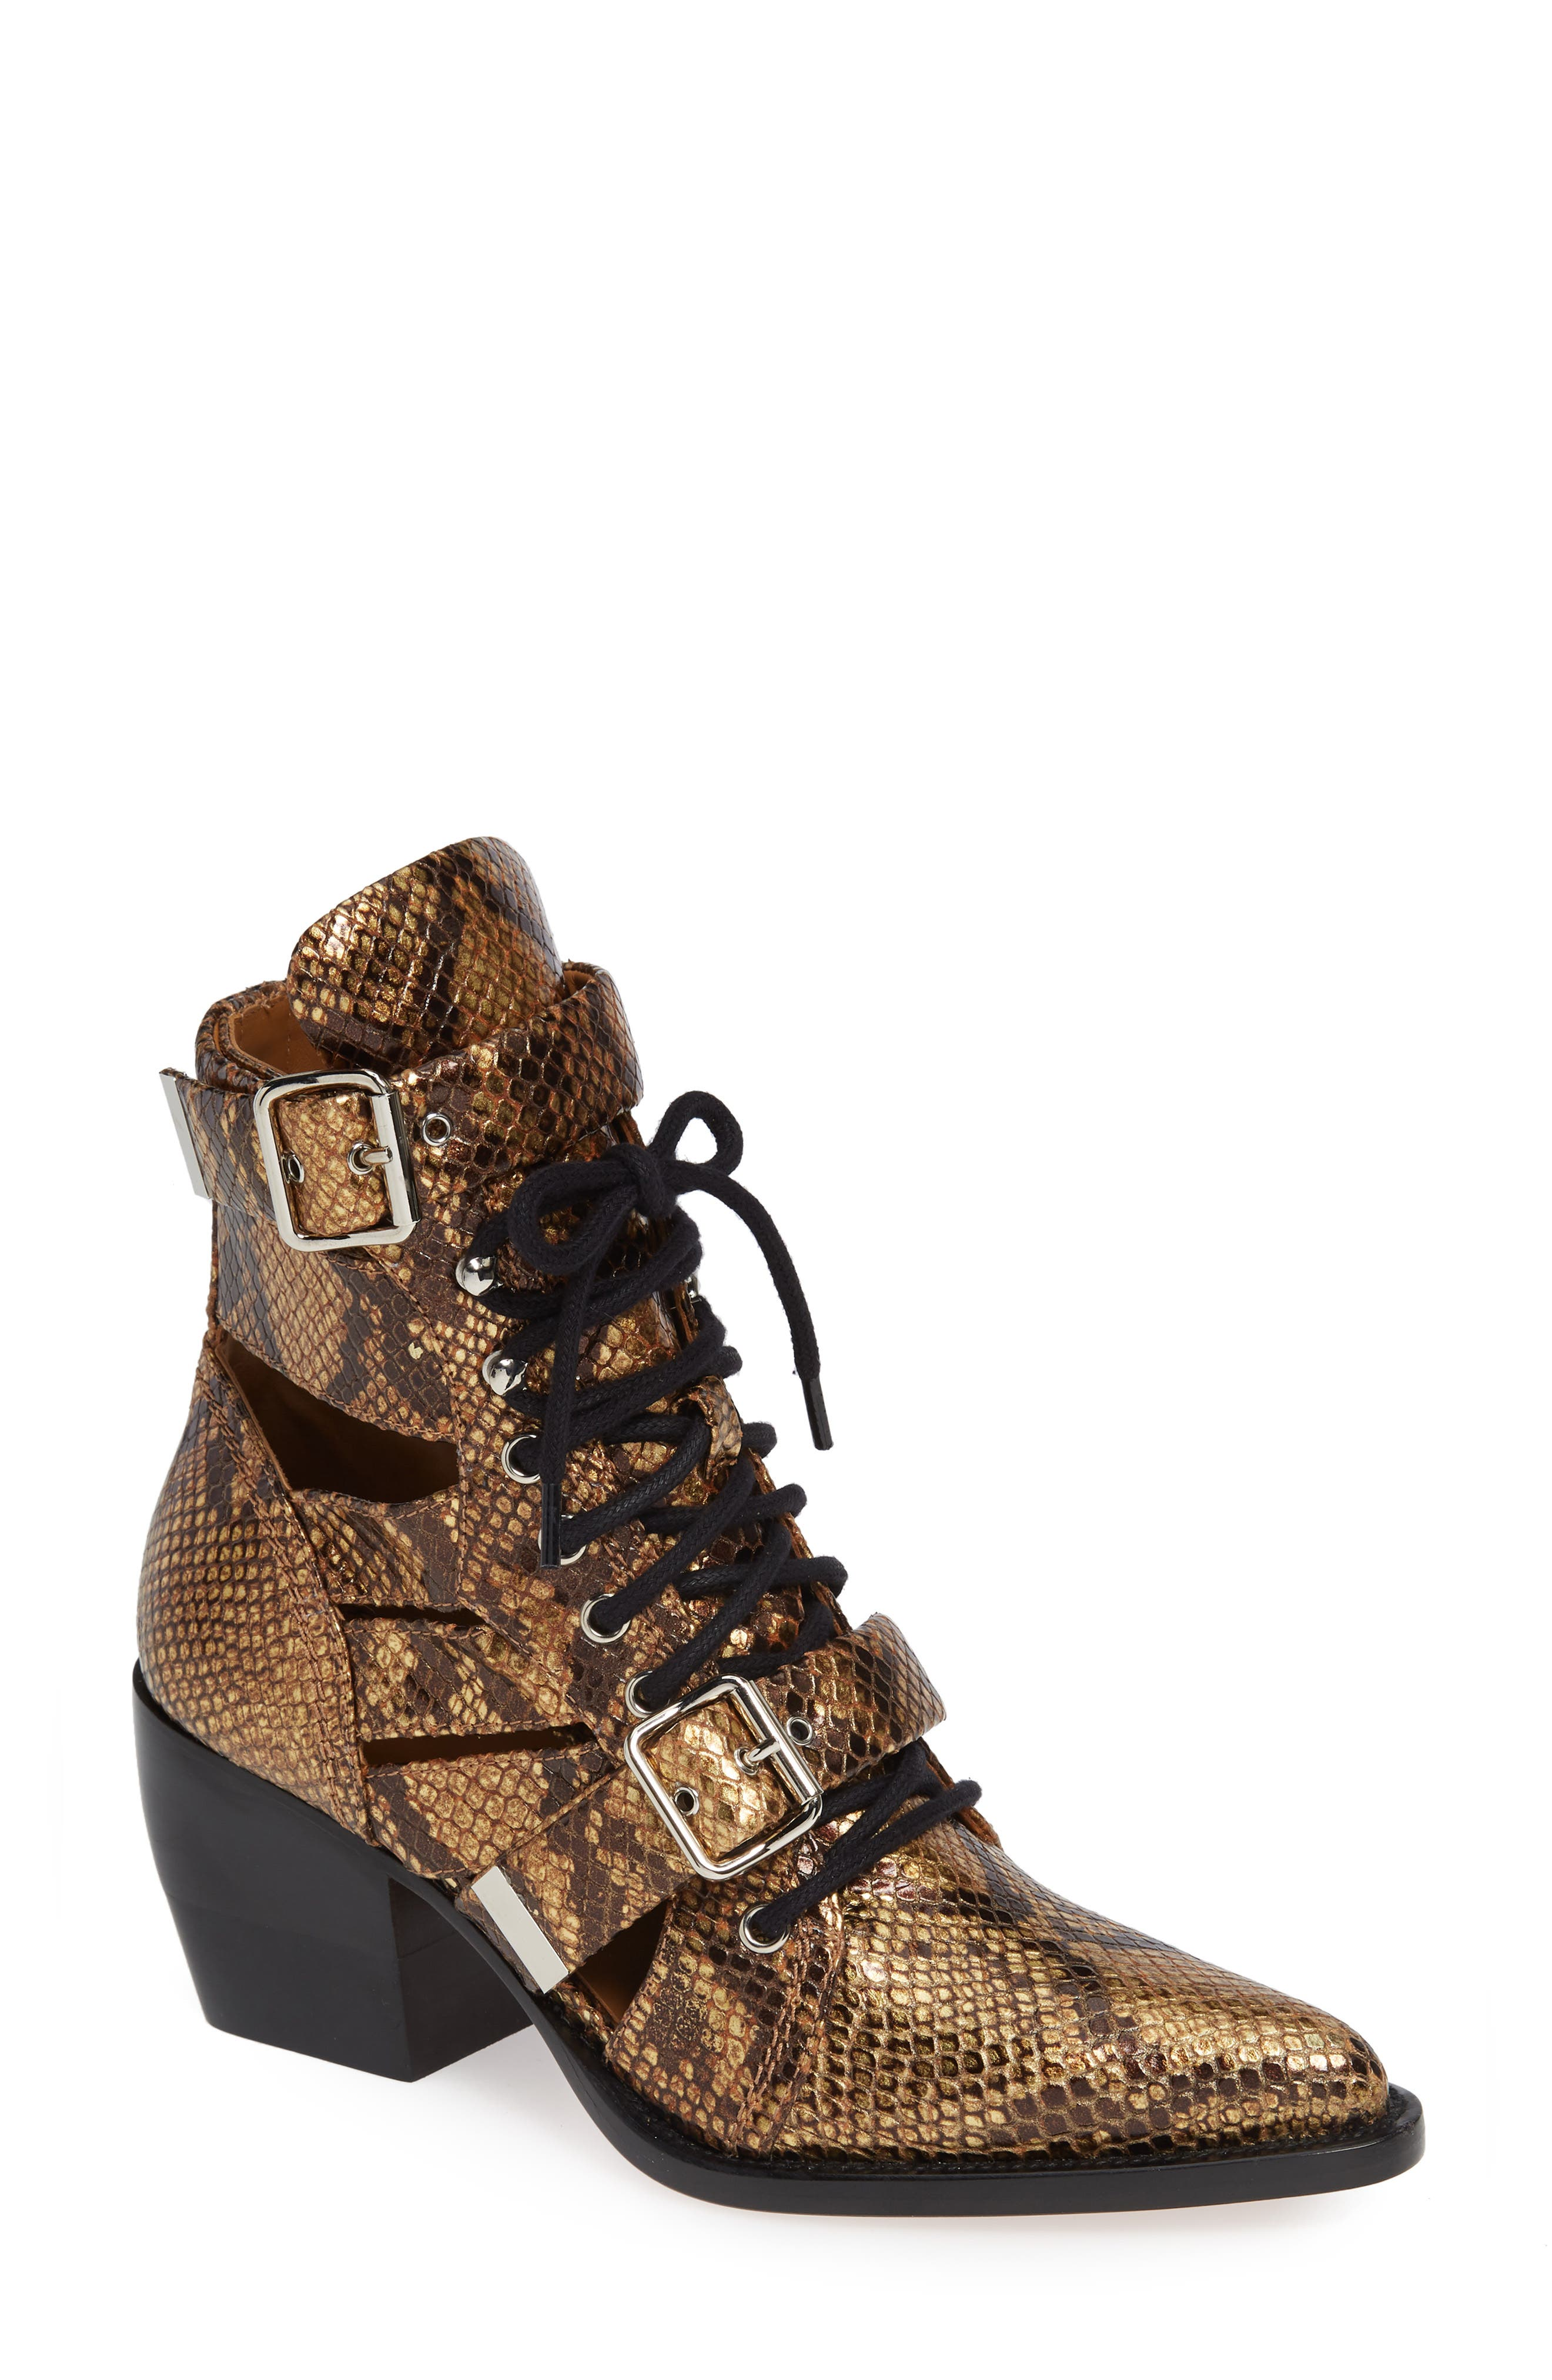 CHLOÉ Rylee Pointy Toe Cage Boot, Main, color, HARVEST GOLD LEATHER